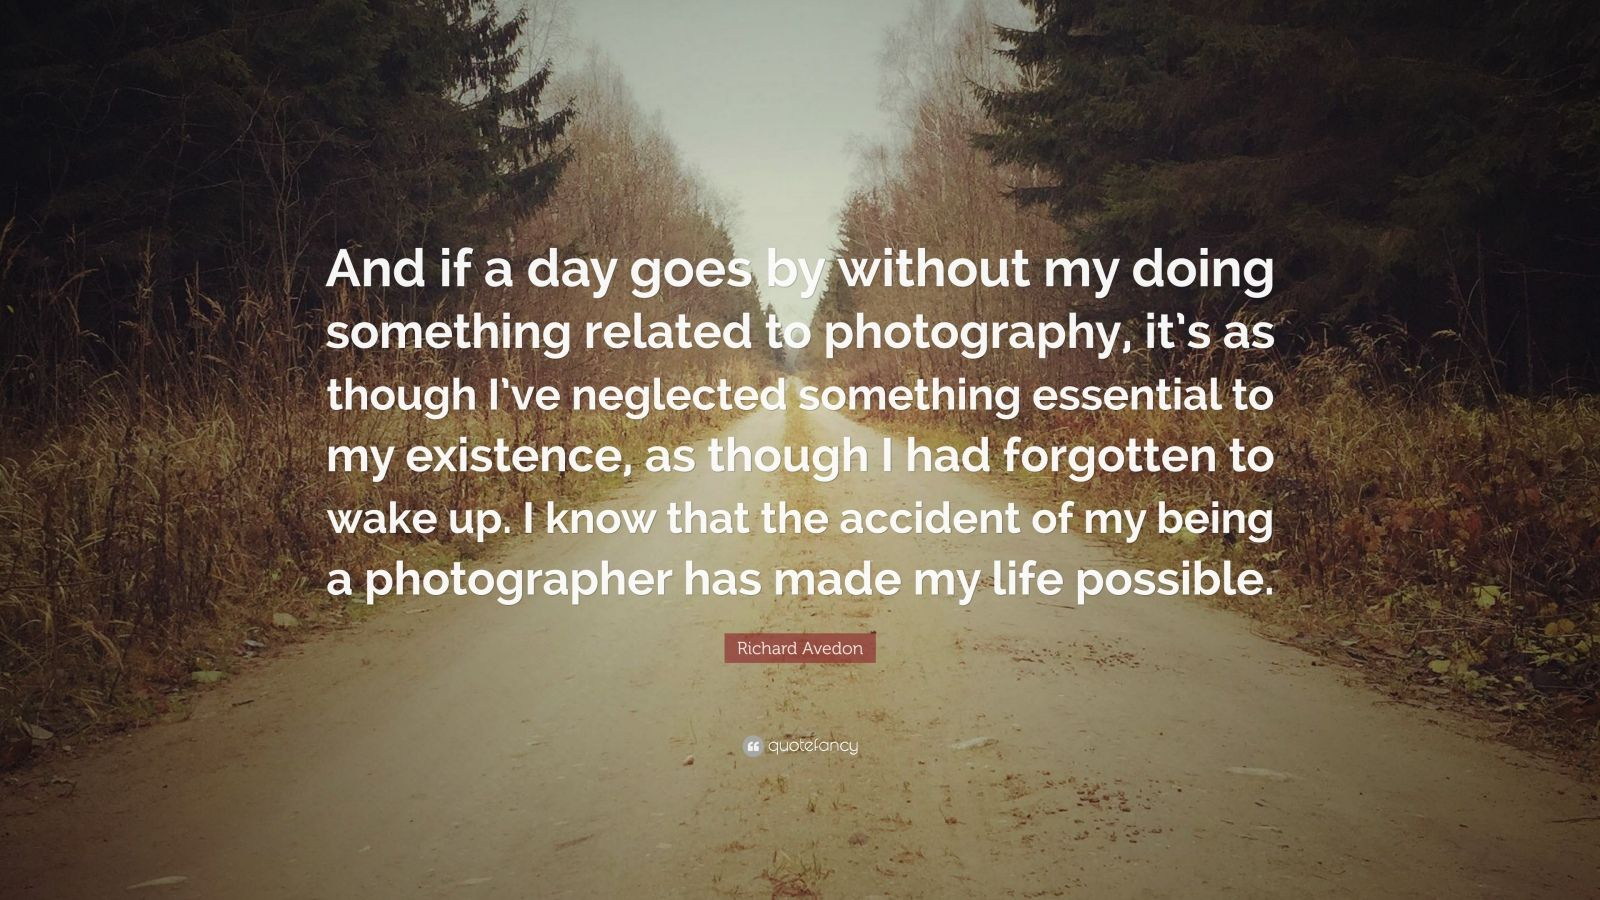 "Richard Avedon Quote: ""And if a day goes by without my doing something related to photography, it's as though I've neglected something essential to my existence, as though I had forgotten to wake up. I know that the accident of my being a photographer has made my life possible."""